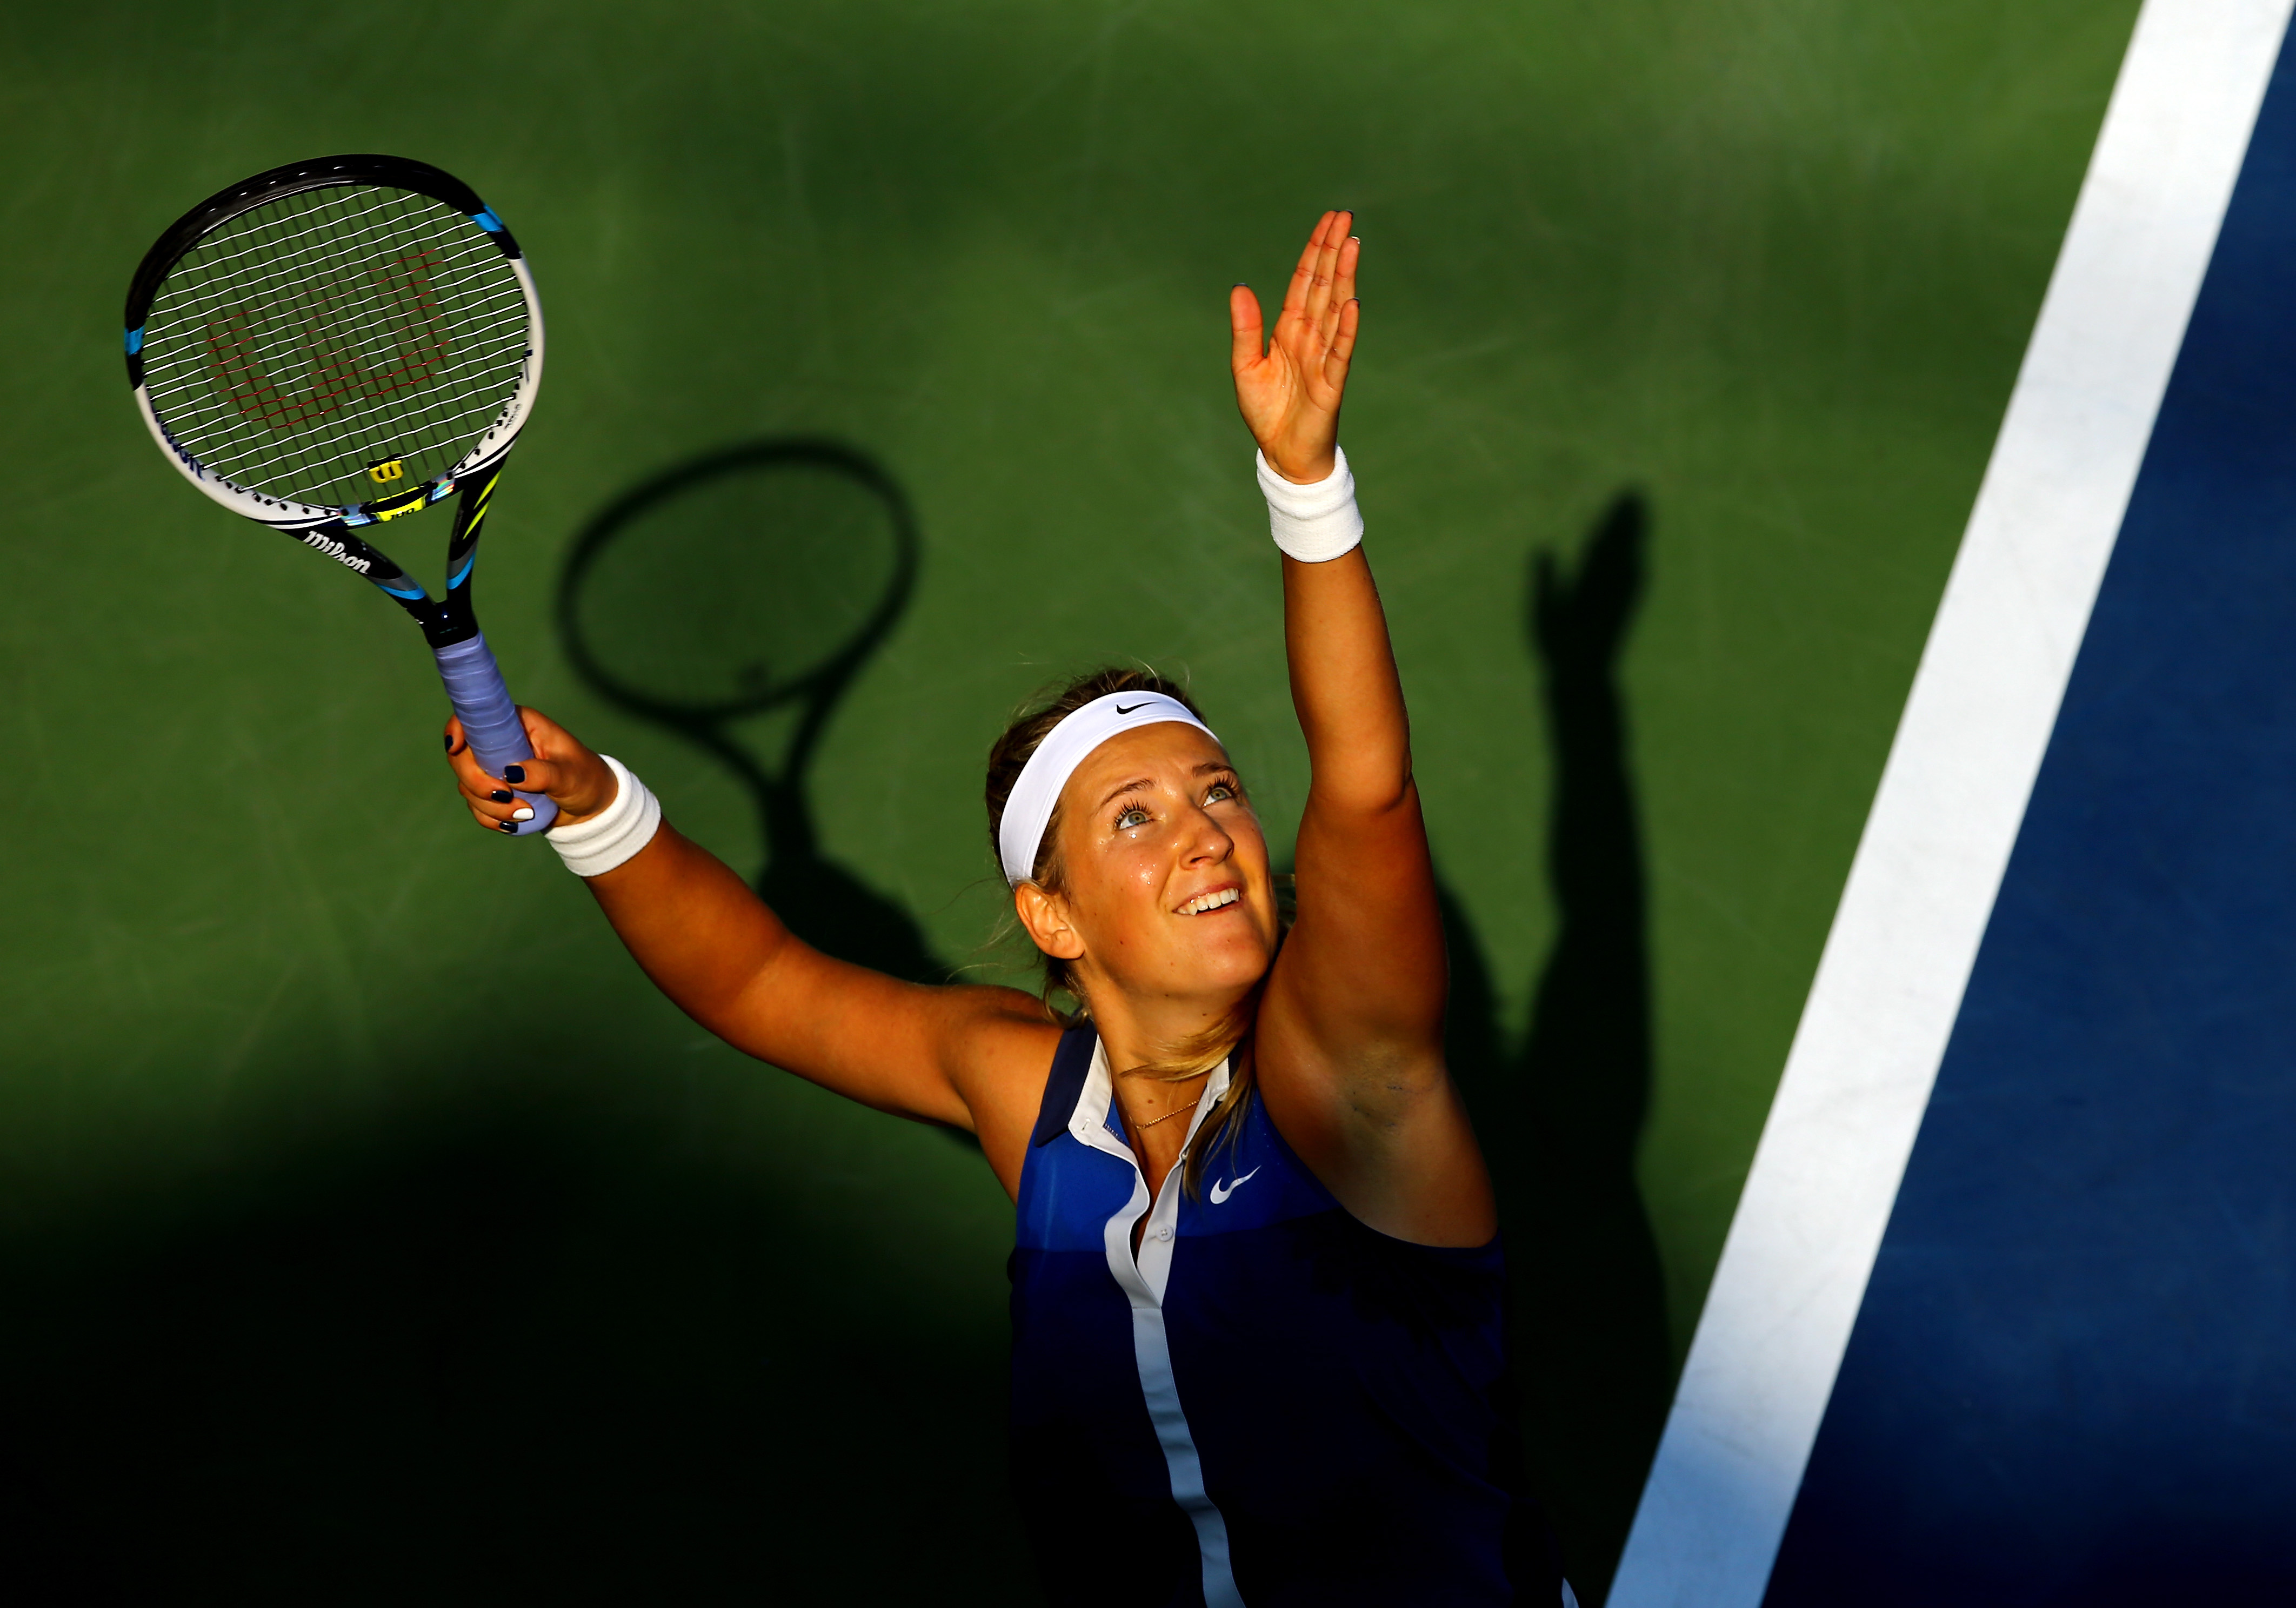 <b>Victoria Azarenka</b> knows that her notorious grunting makes Monica Seles sound tame — and she remains unapologetic about it. The 21-year-old Belarusian says the shrieking helps her accelerate and deliver more power to the ball — skills that have taken her to the quarterfinals at four Grand Slams and helped her climb to No. 4 in the world rankings in 2011.